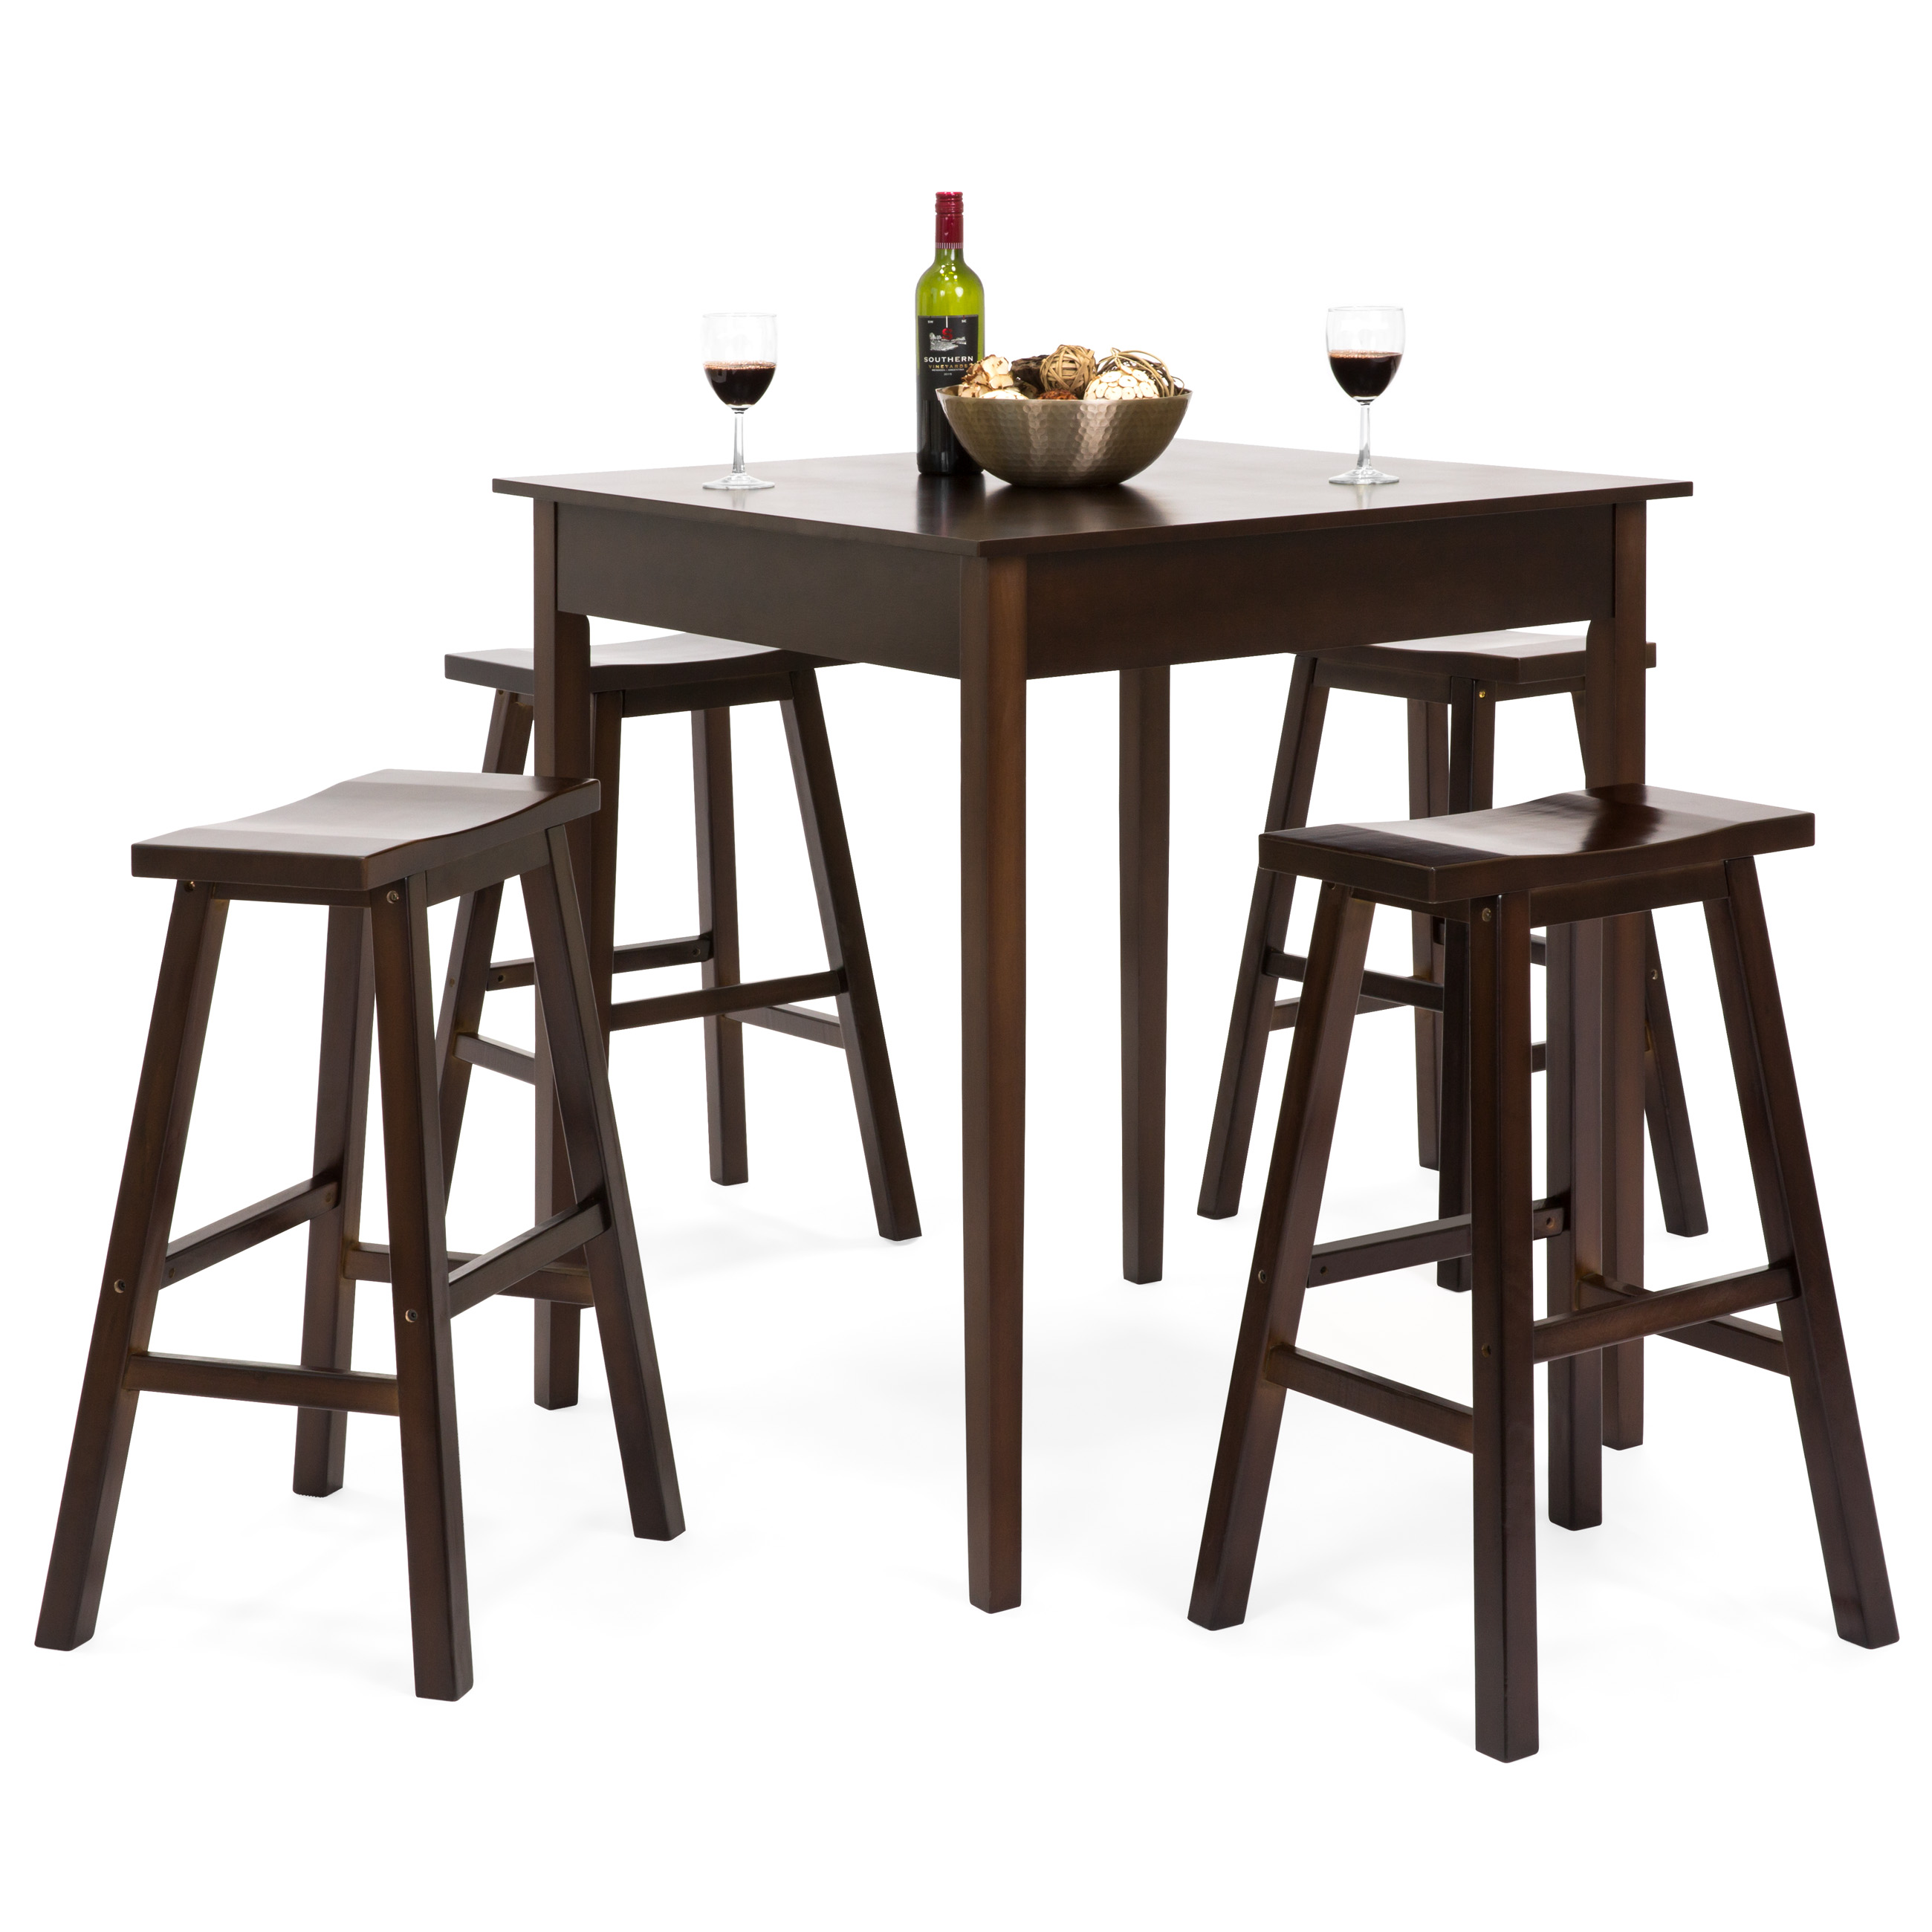 Best Choice Products 5 Piece Solid Wood Dining Pub Bar